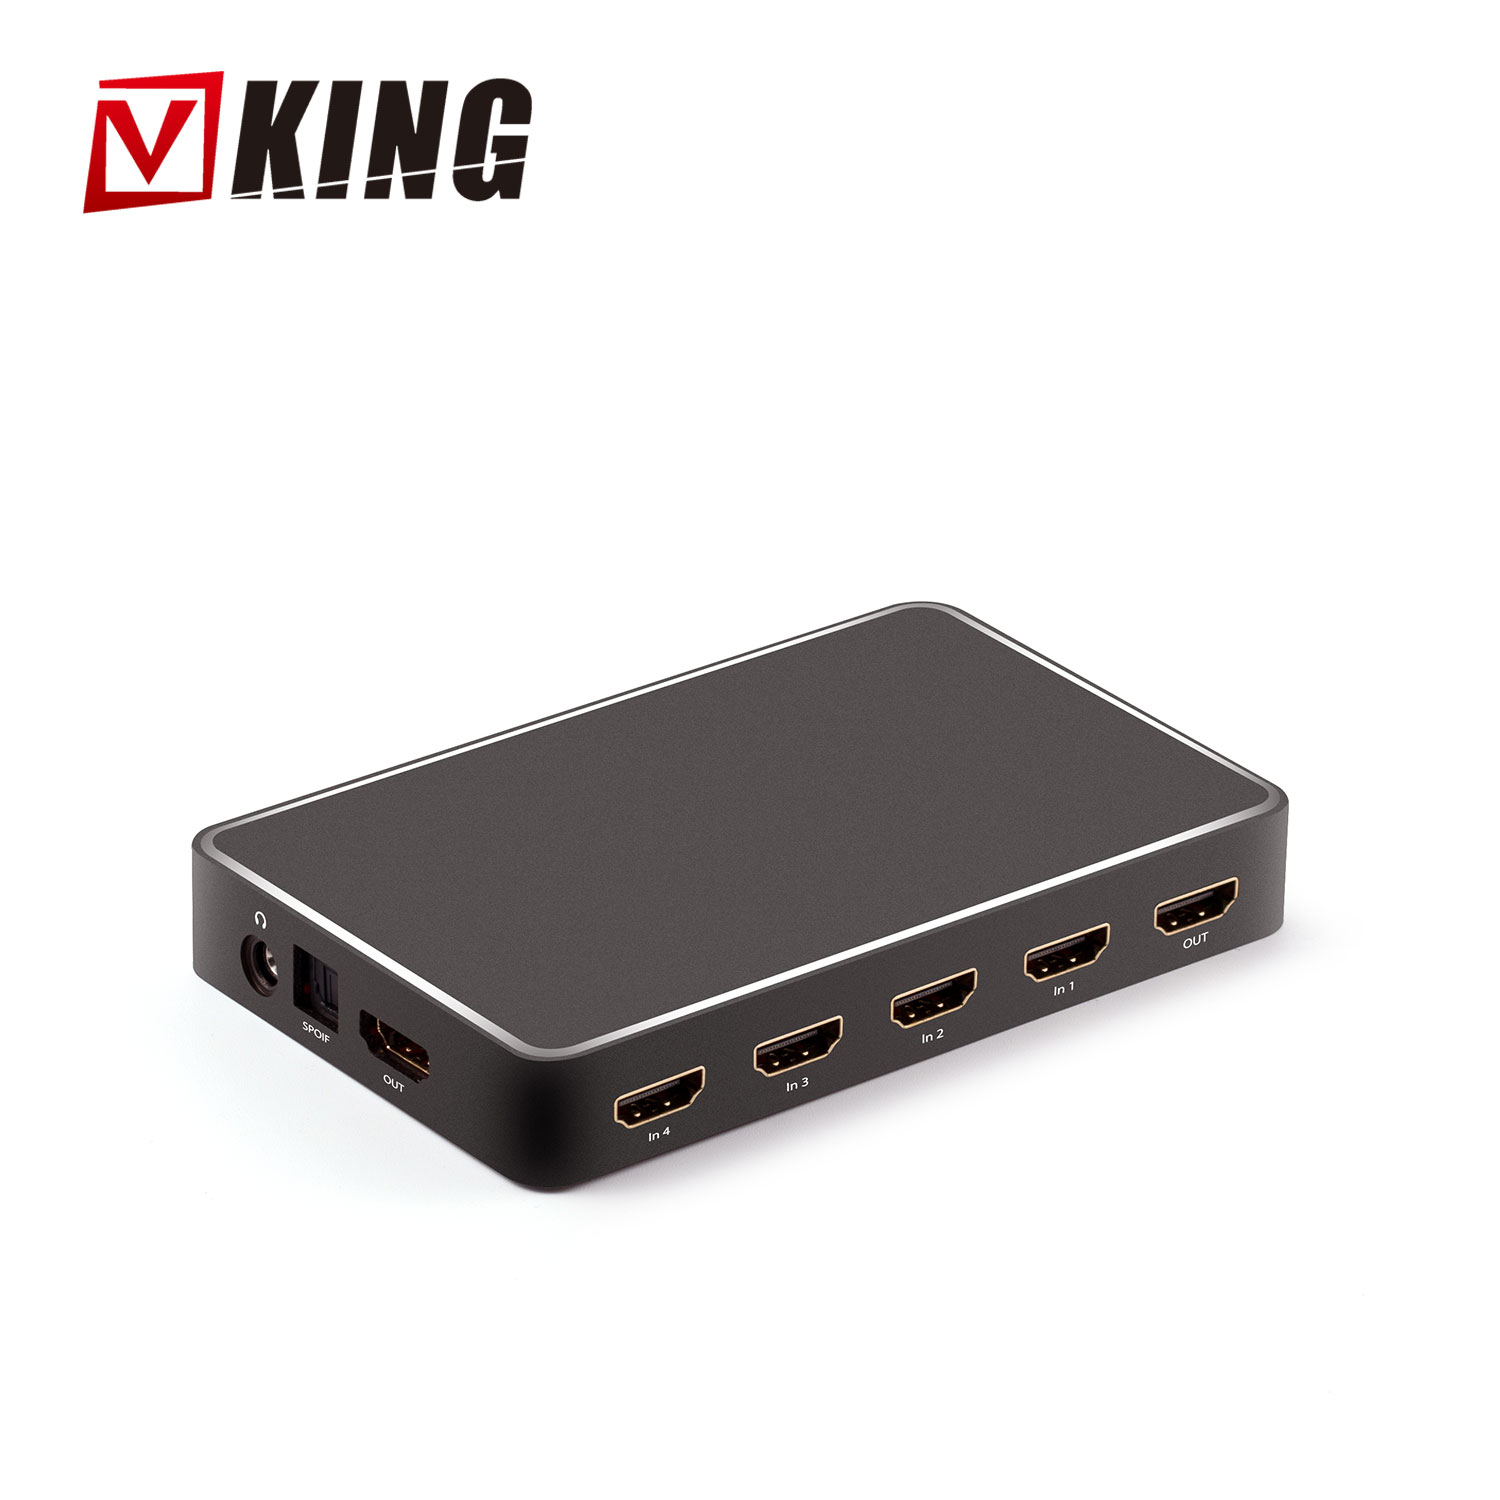 High Performance 4k 1080p 6 Port Hdmi Switch + Audio Extractor Switch 6 In  1 Out 6 Ports Hdmi Switcher Box With Ir Remote Arc - Buy Hdmi Switch With